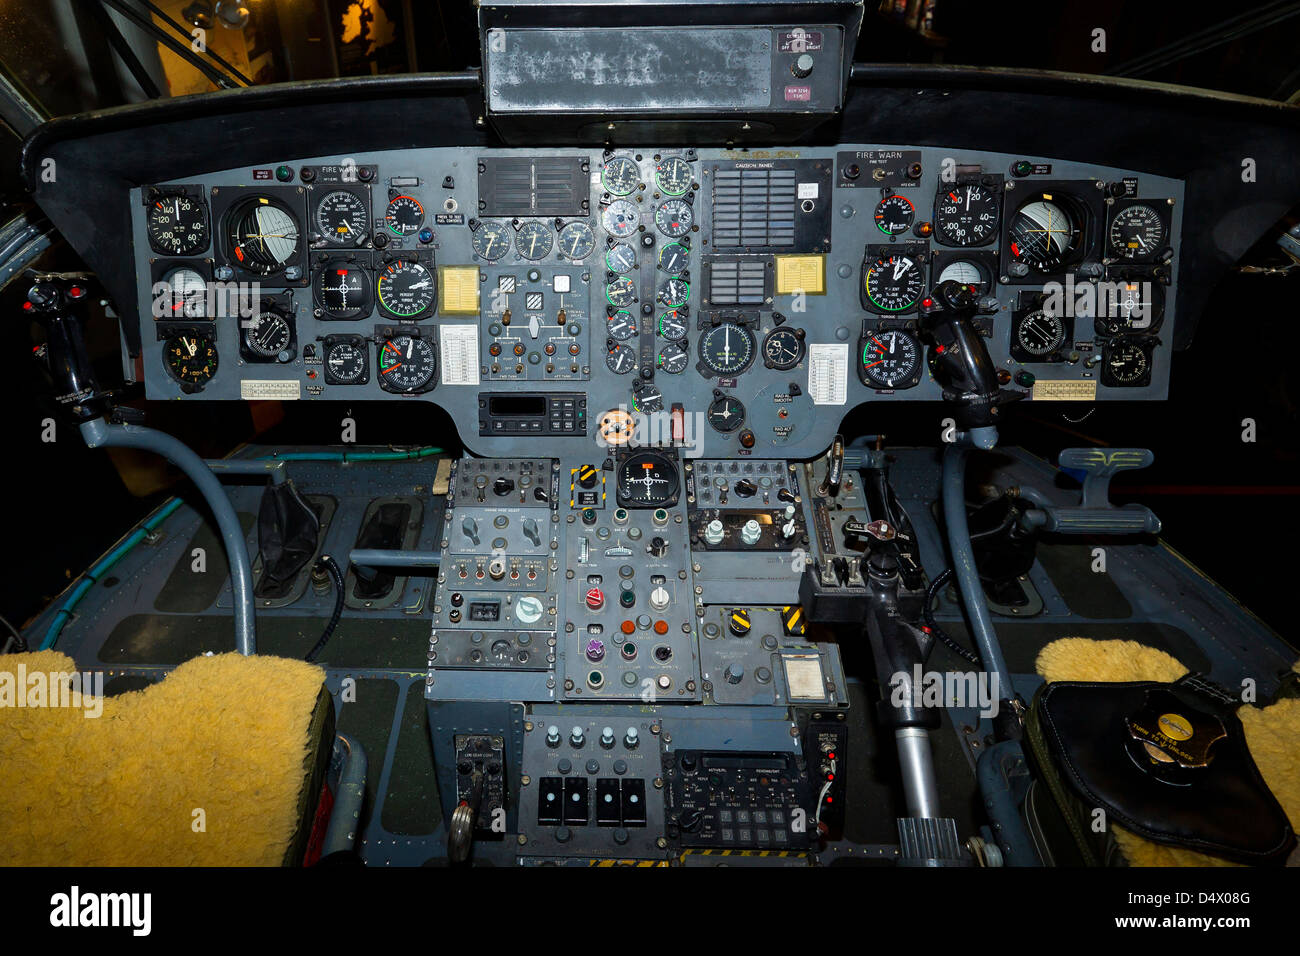 Westland Sea King XV663 Helicopter Cockpit And Controls - Stock Image